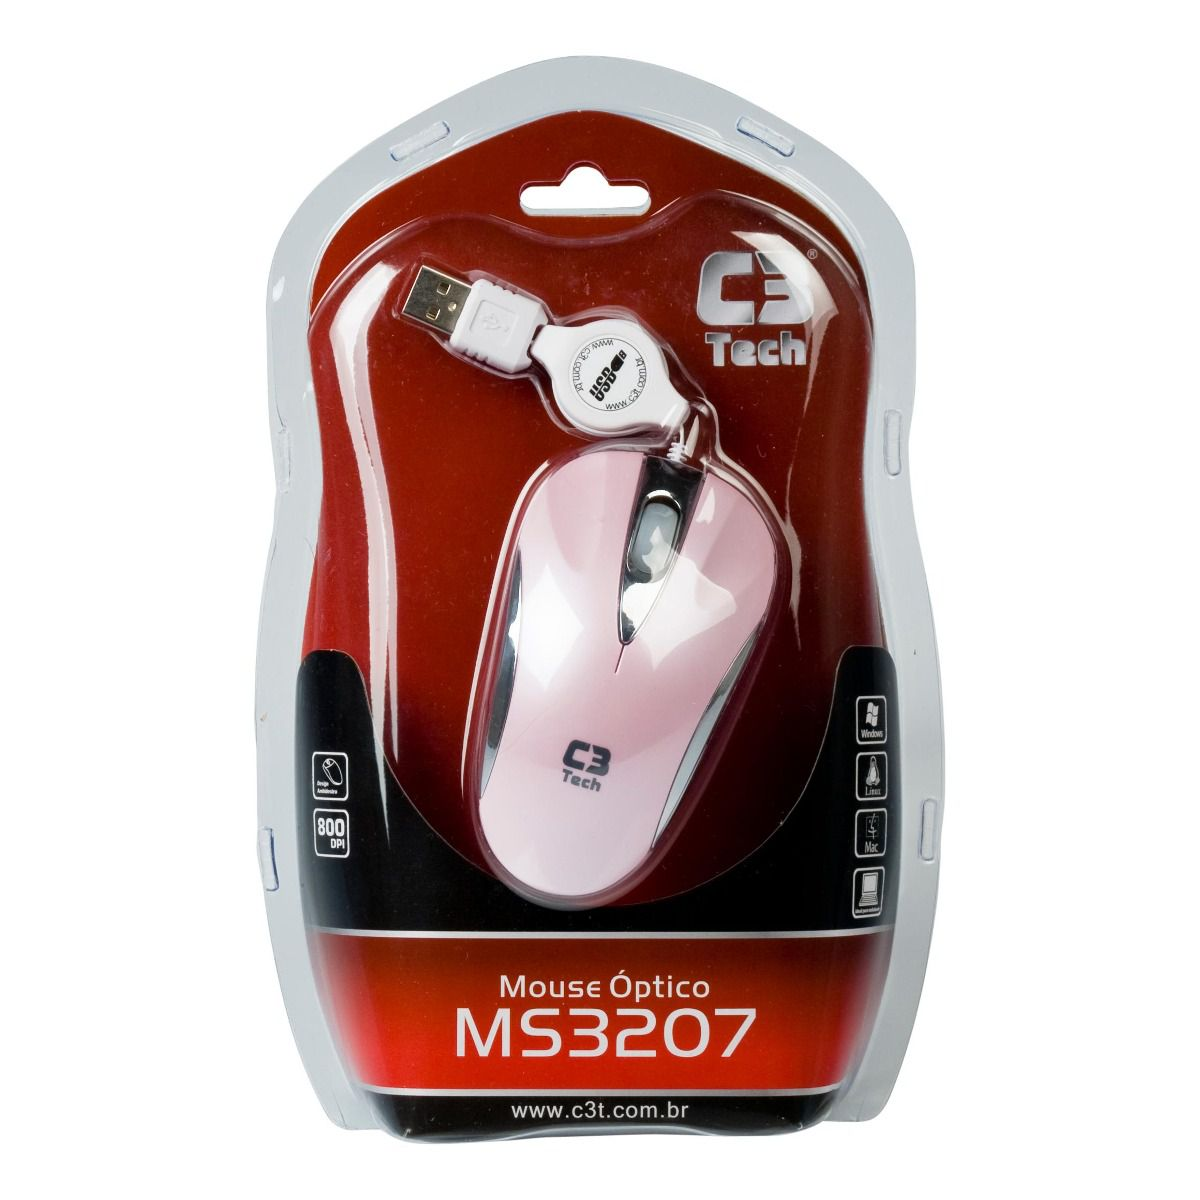 Mini Mouse Retrátil USB C3 Tech, Rosa - MS3207-2 PSI